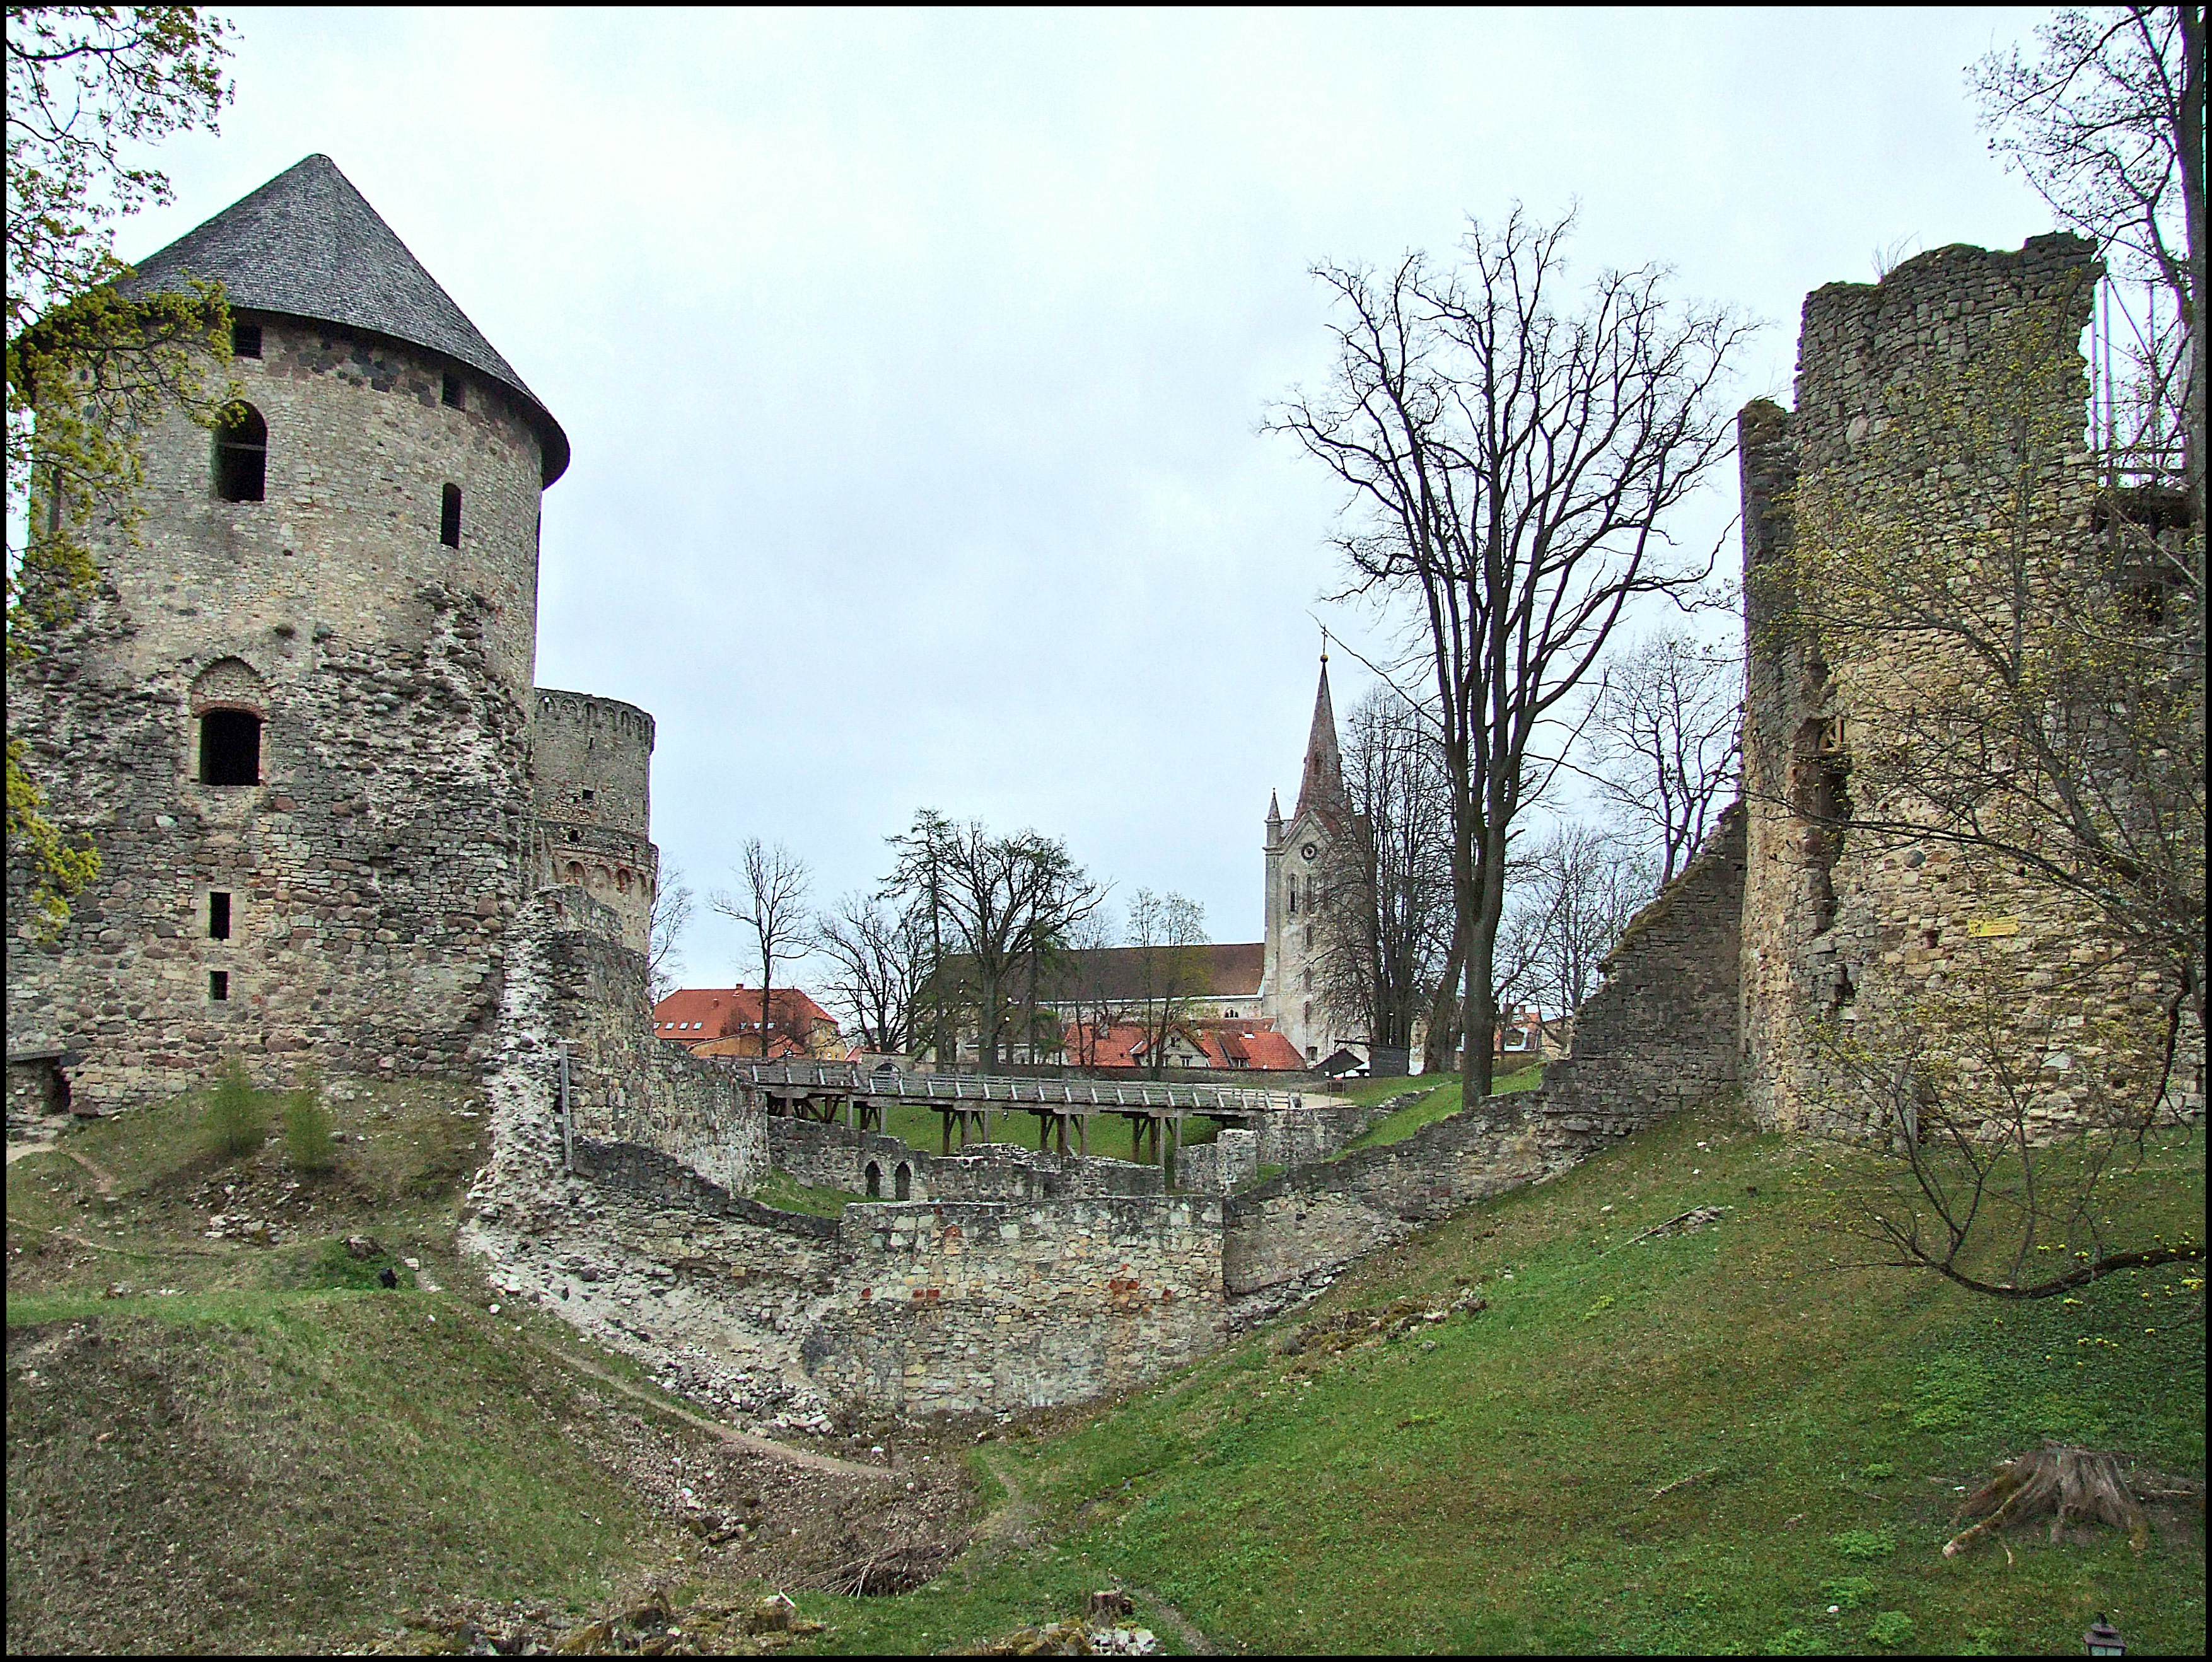 File:Cēsis old castle.jpg - Wikimedia Commons